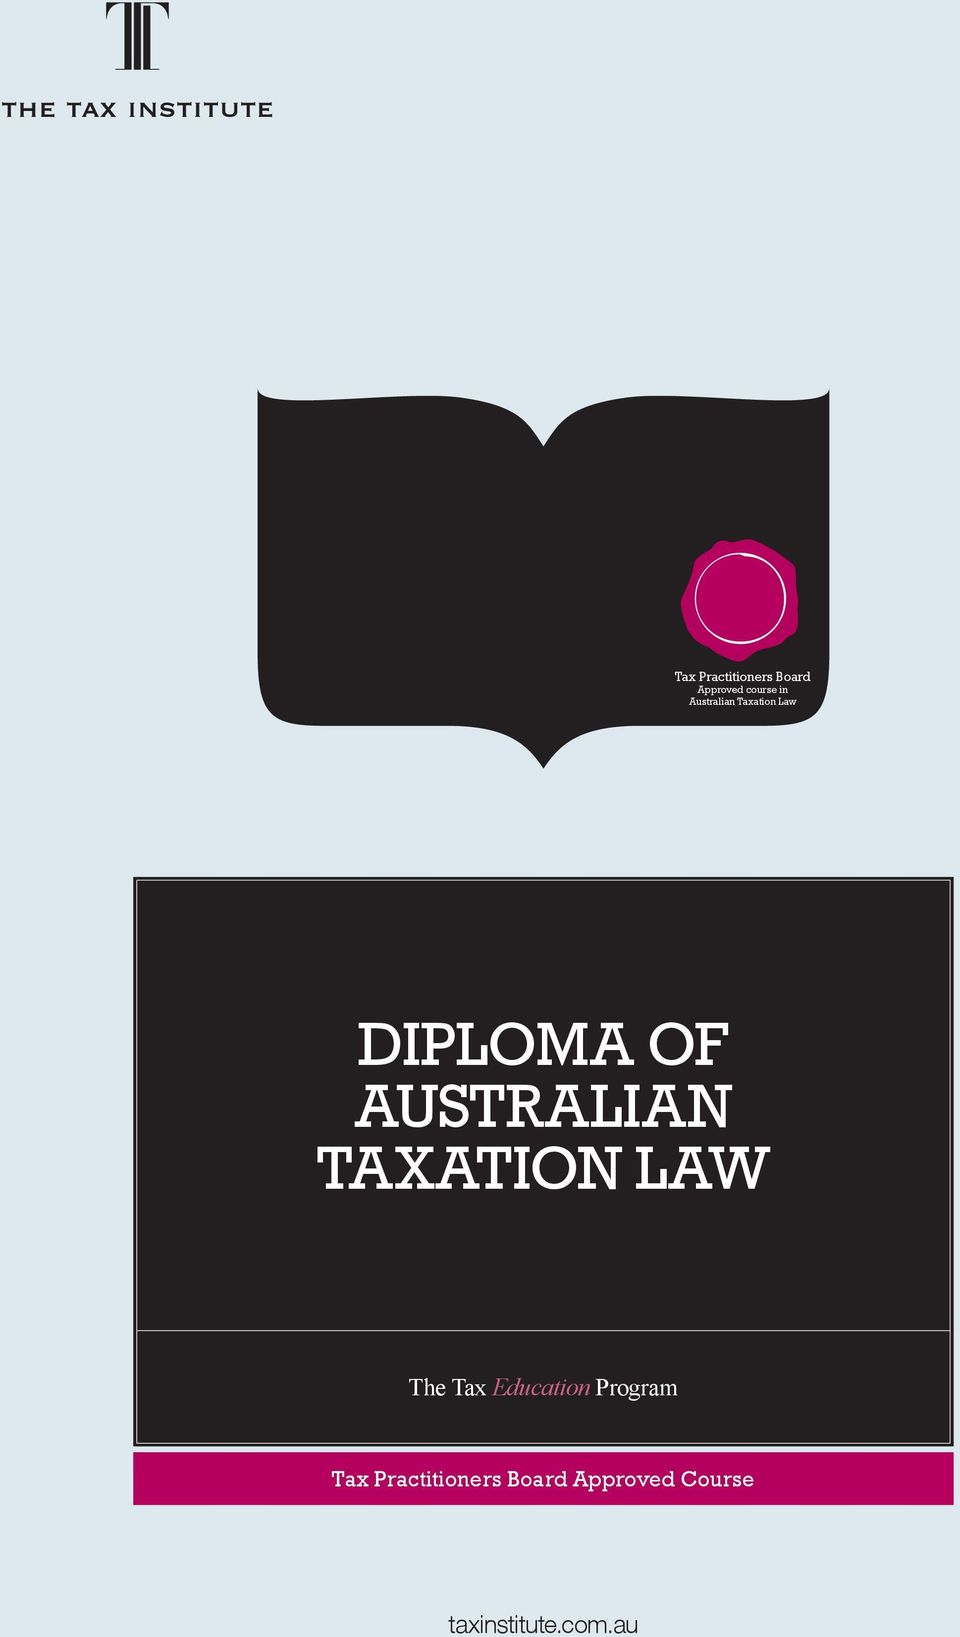 TAXATION LAW The Tax Education Program Tax